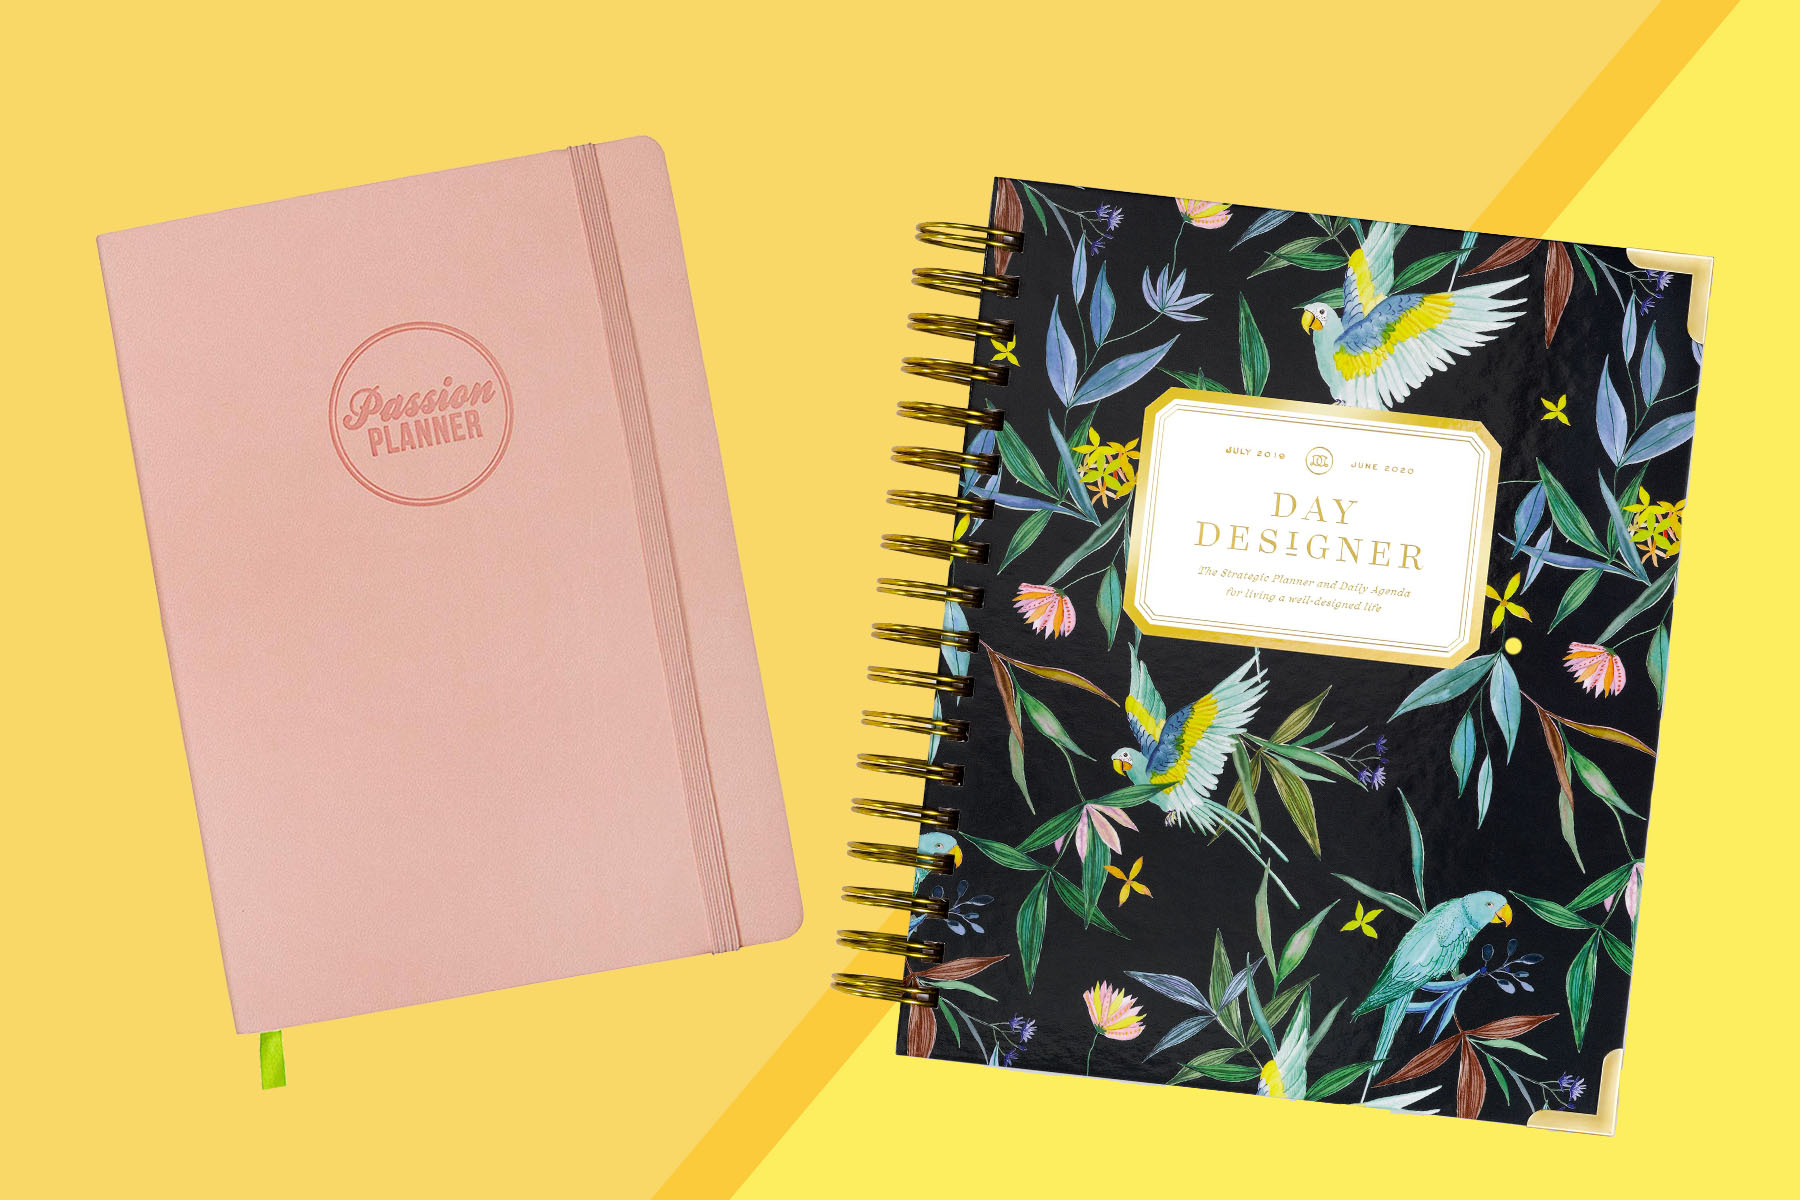 Best Planners And Organizers 2020.Best Academic Planners 2019 Including Moleskine Planners